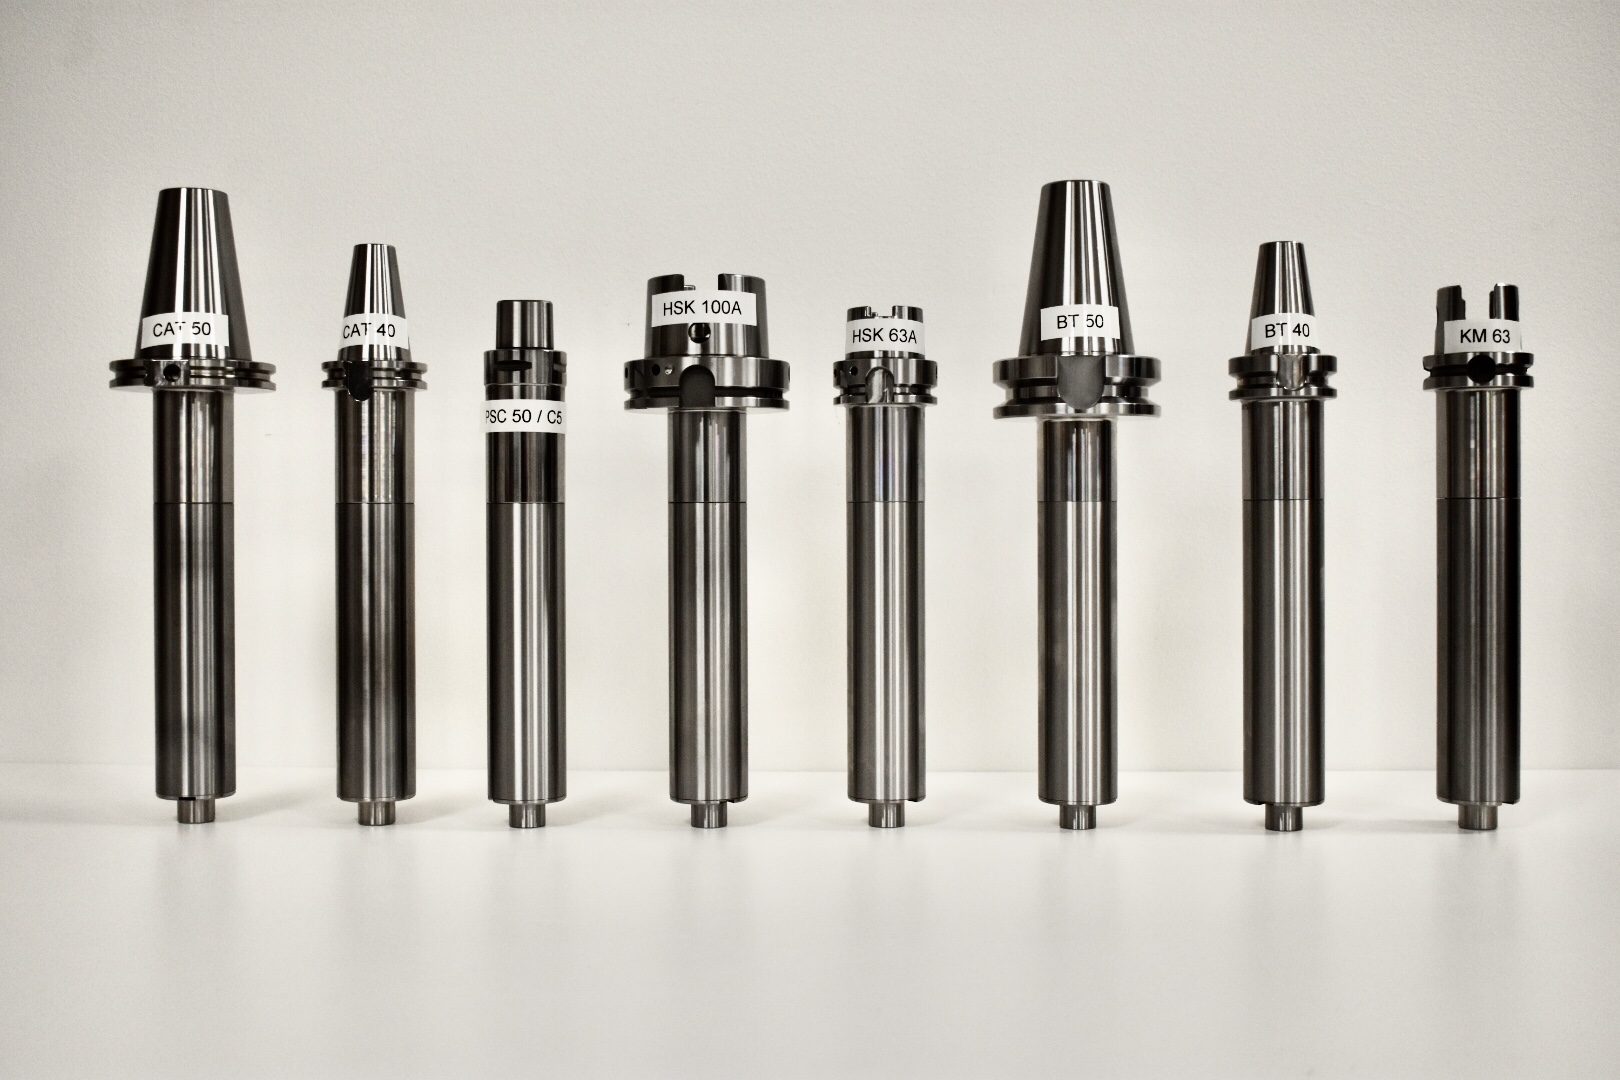 News - Product release of new milling tools